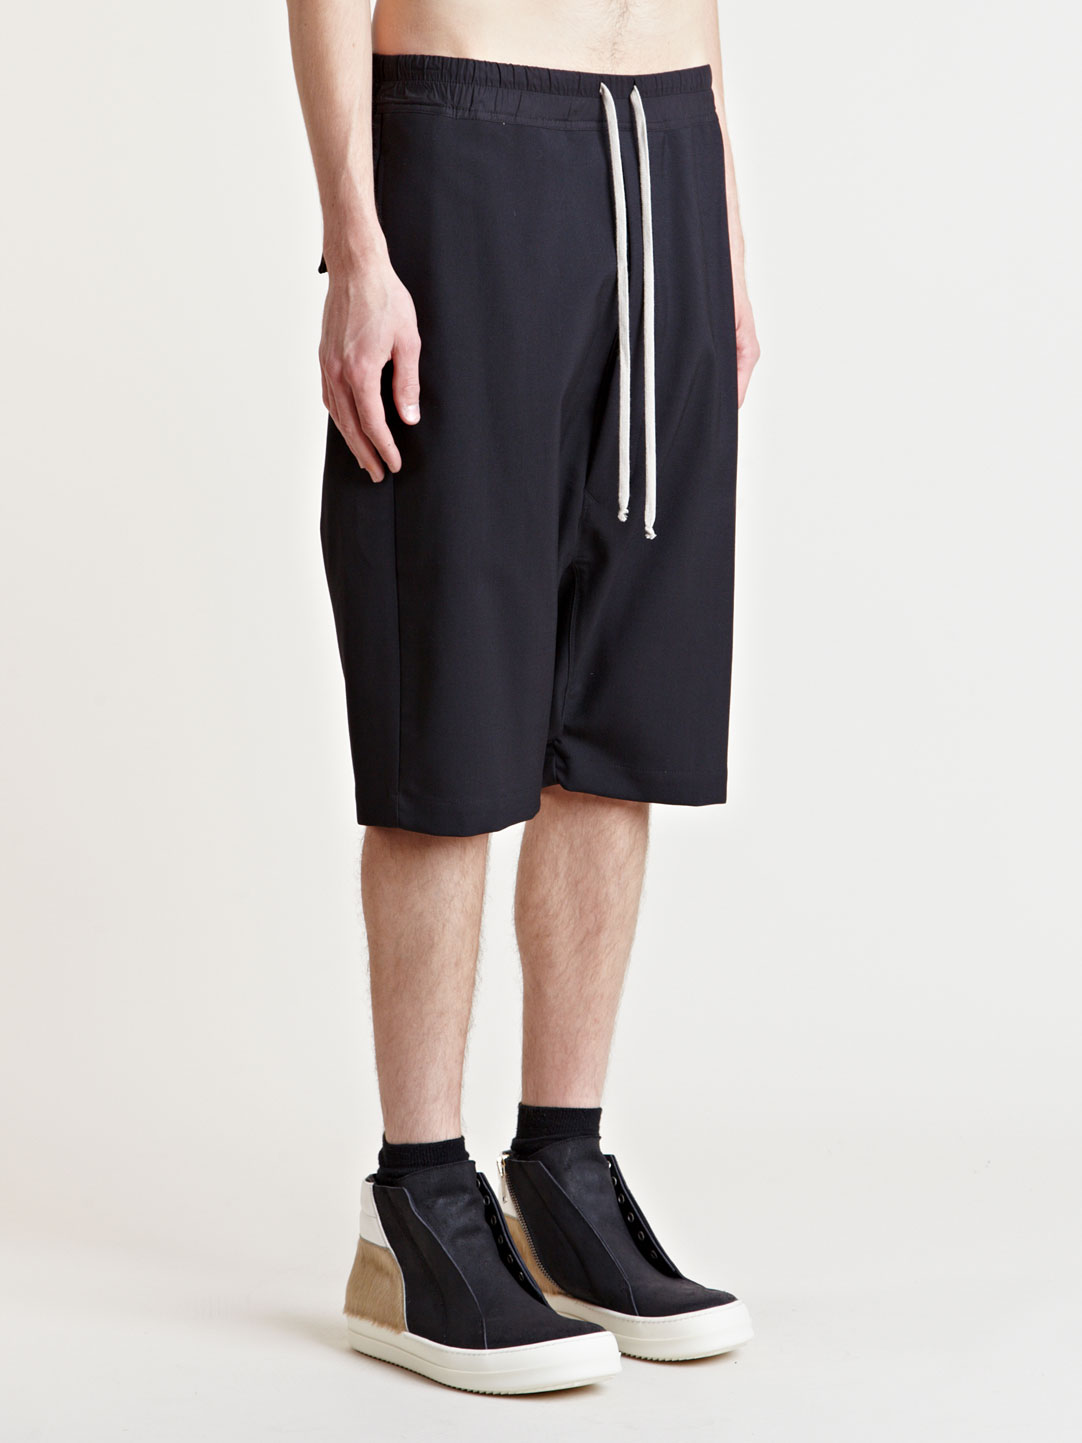 Technical shorts Rick Owens View Pictures Buy Cheap Limited Edition P8yhBw